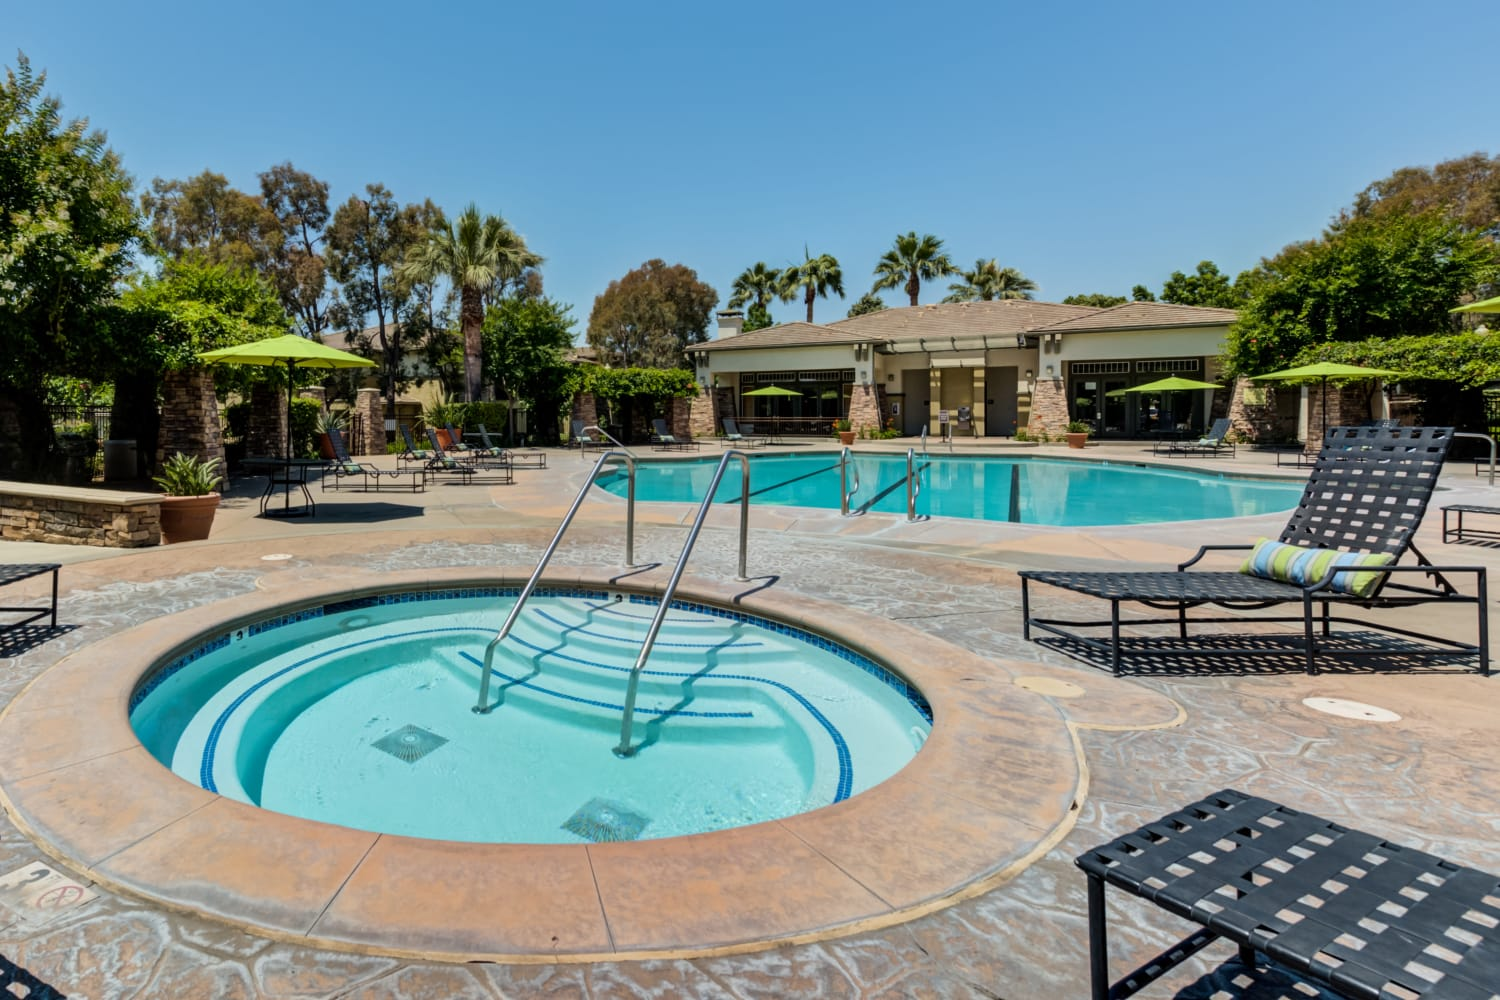 Camino Real offers a great pool